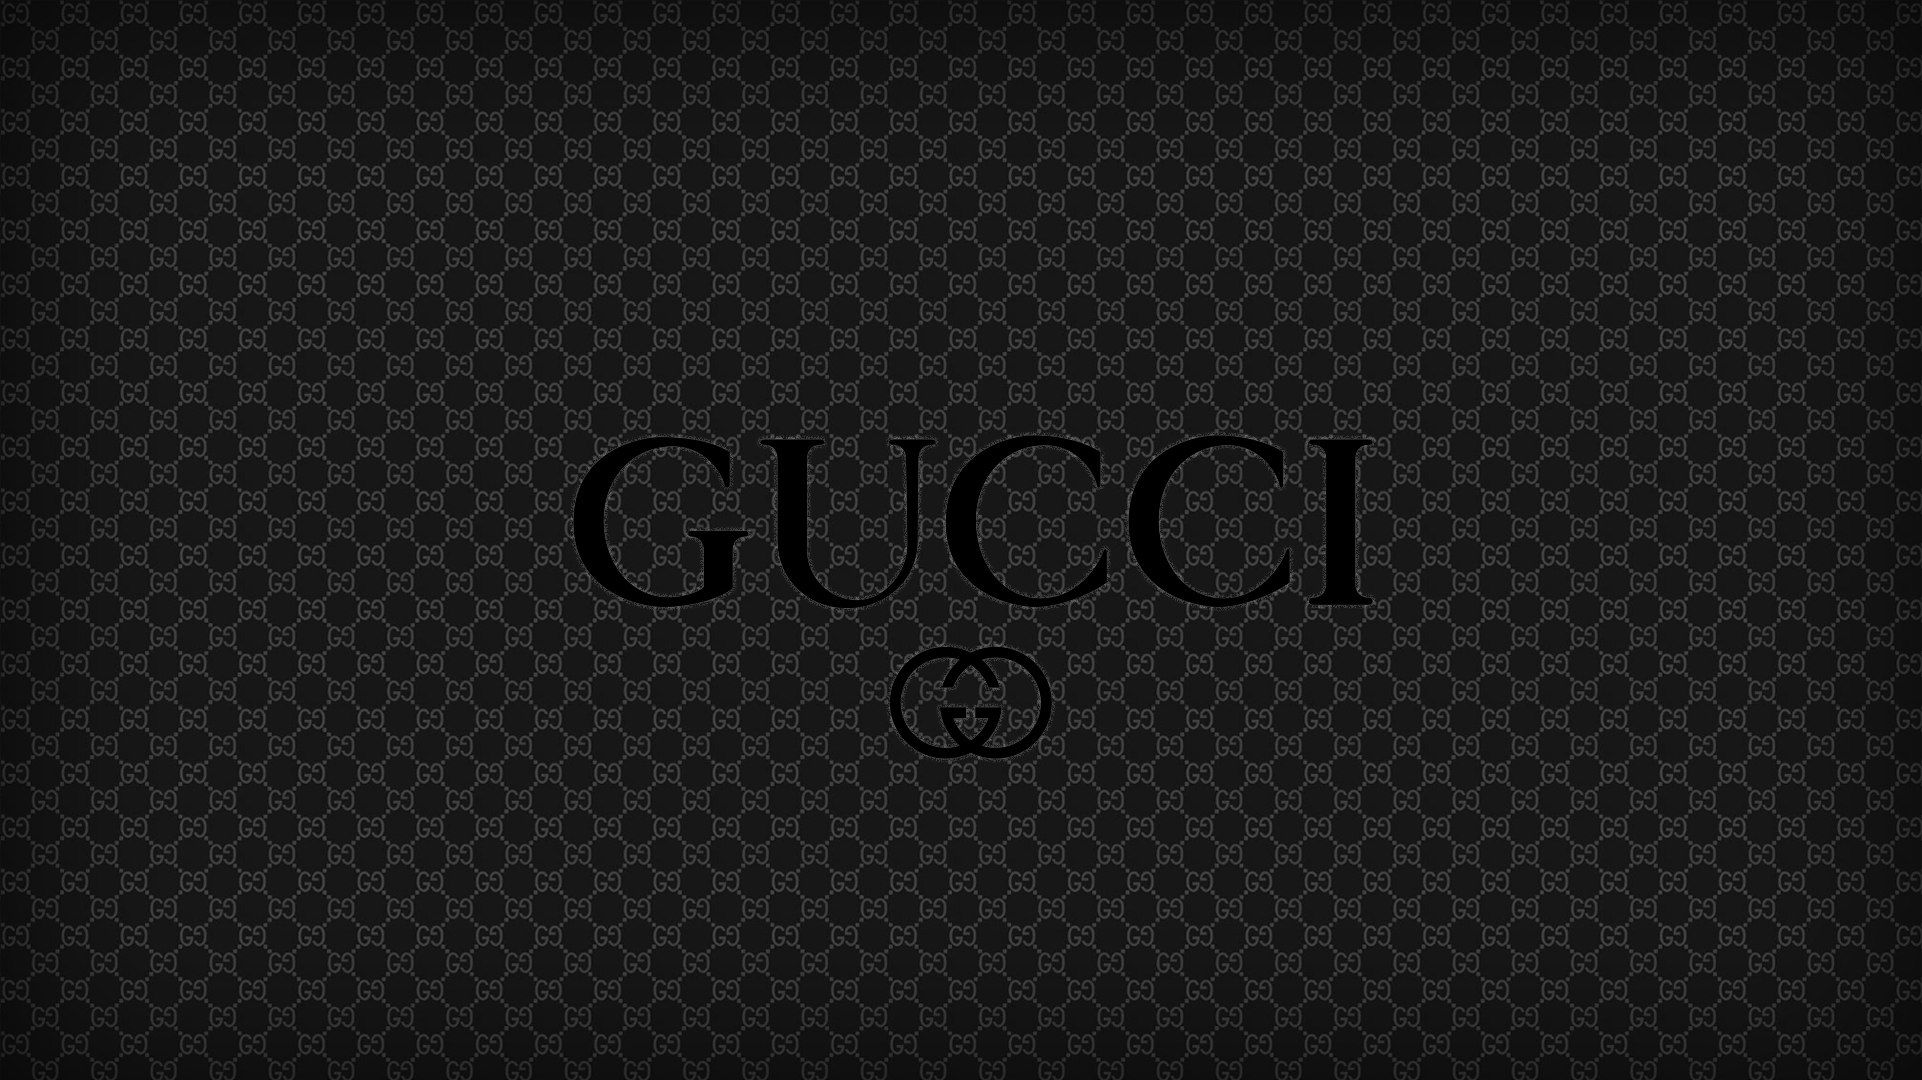 Gucci HD Wallpapers   HD Wallpapers 1922x1080